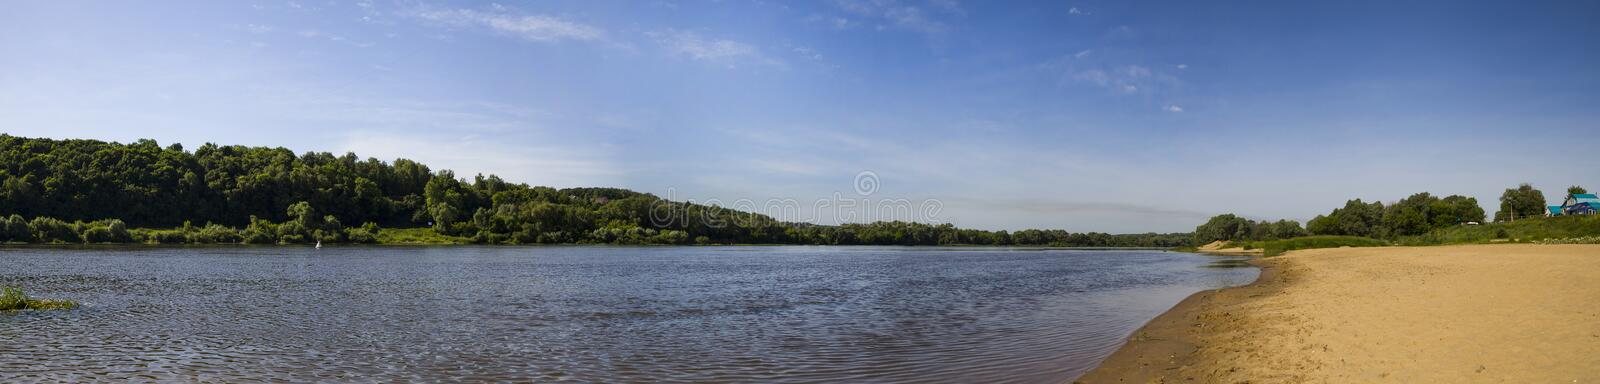 Oka-Fluss an einem Sommertag Panorama stockfotos